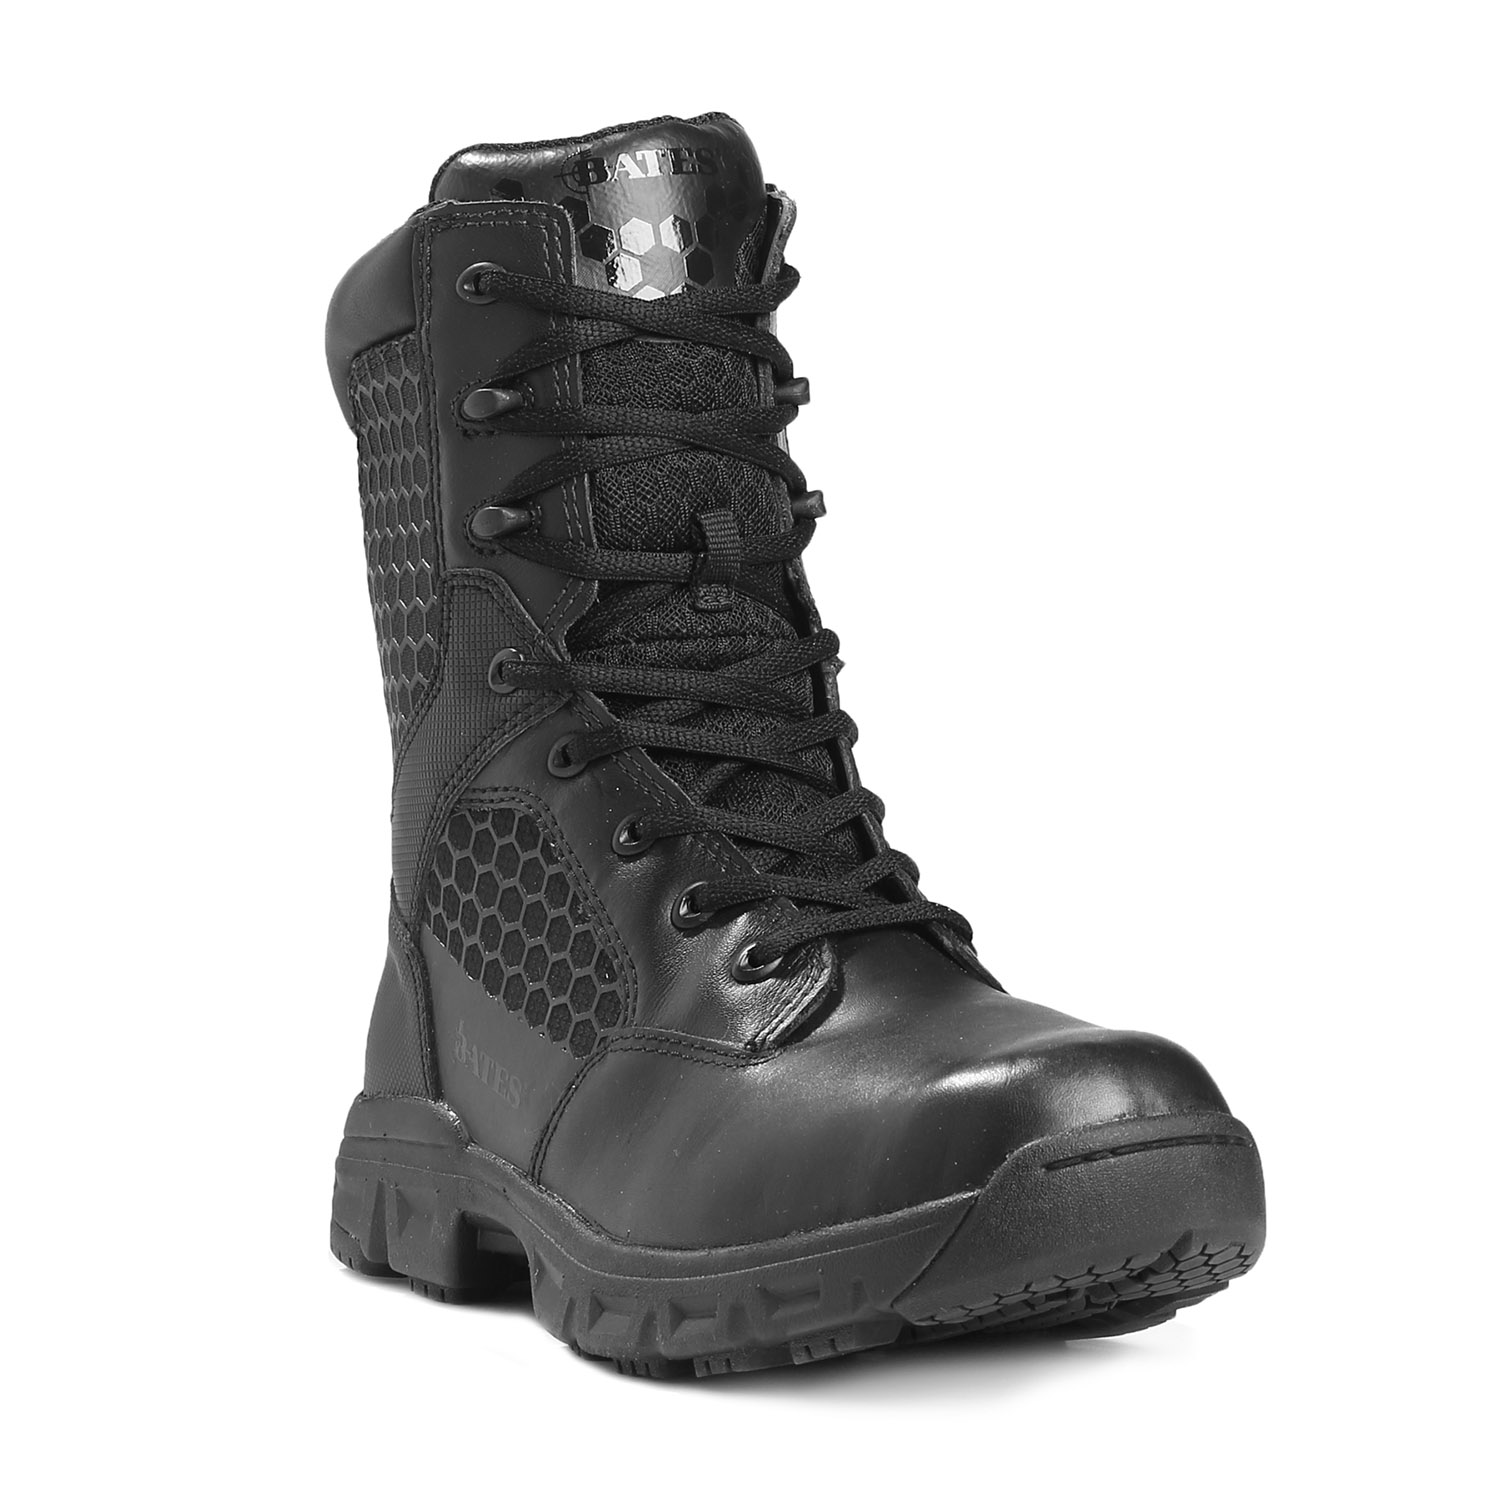 "Bates 8"" Code 6 Side Zip Boot"